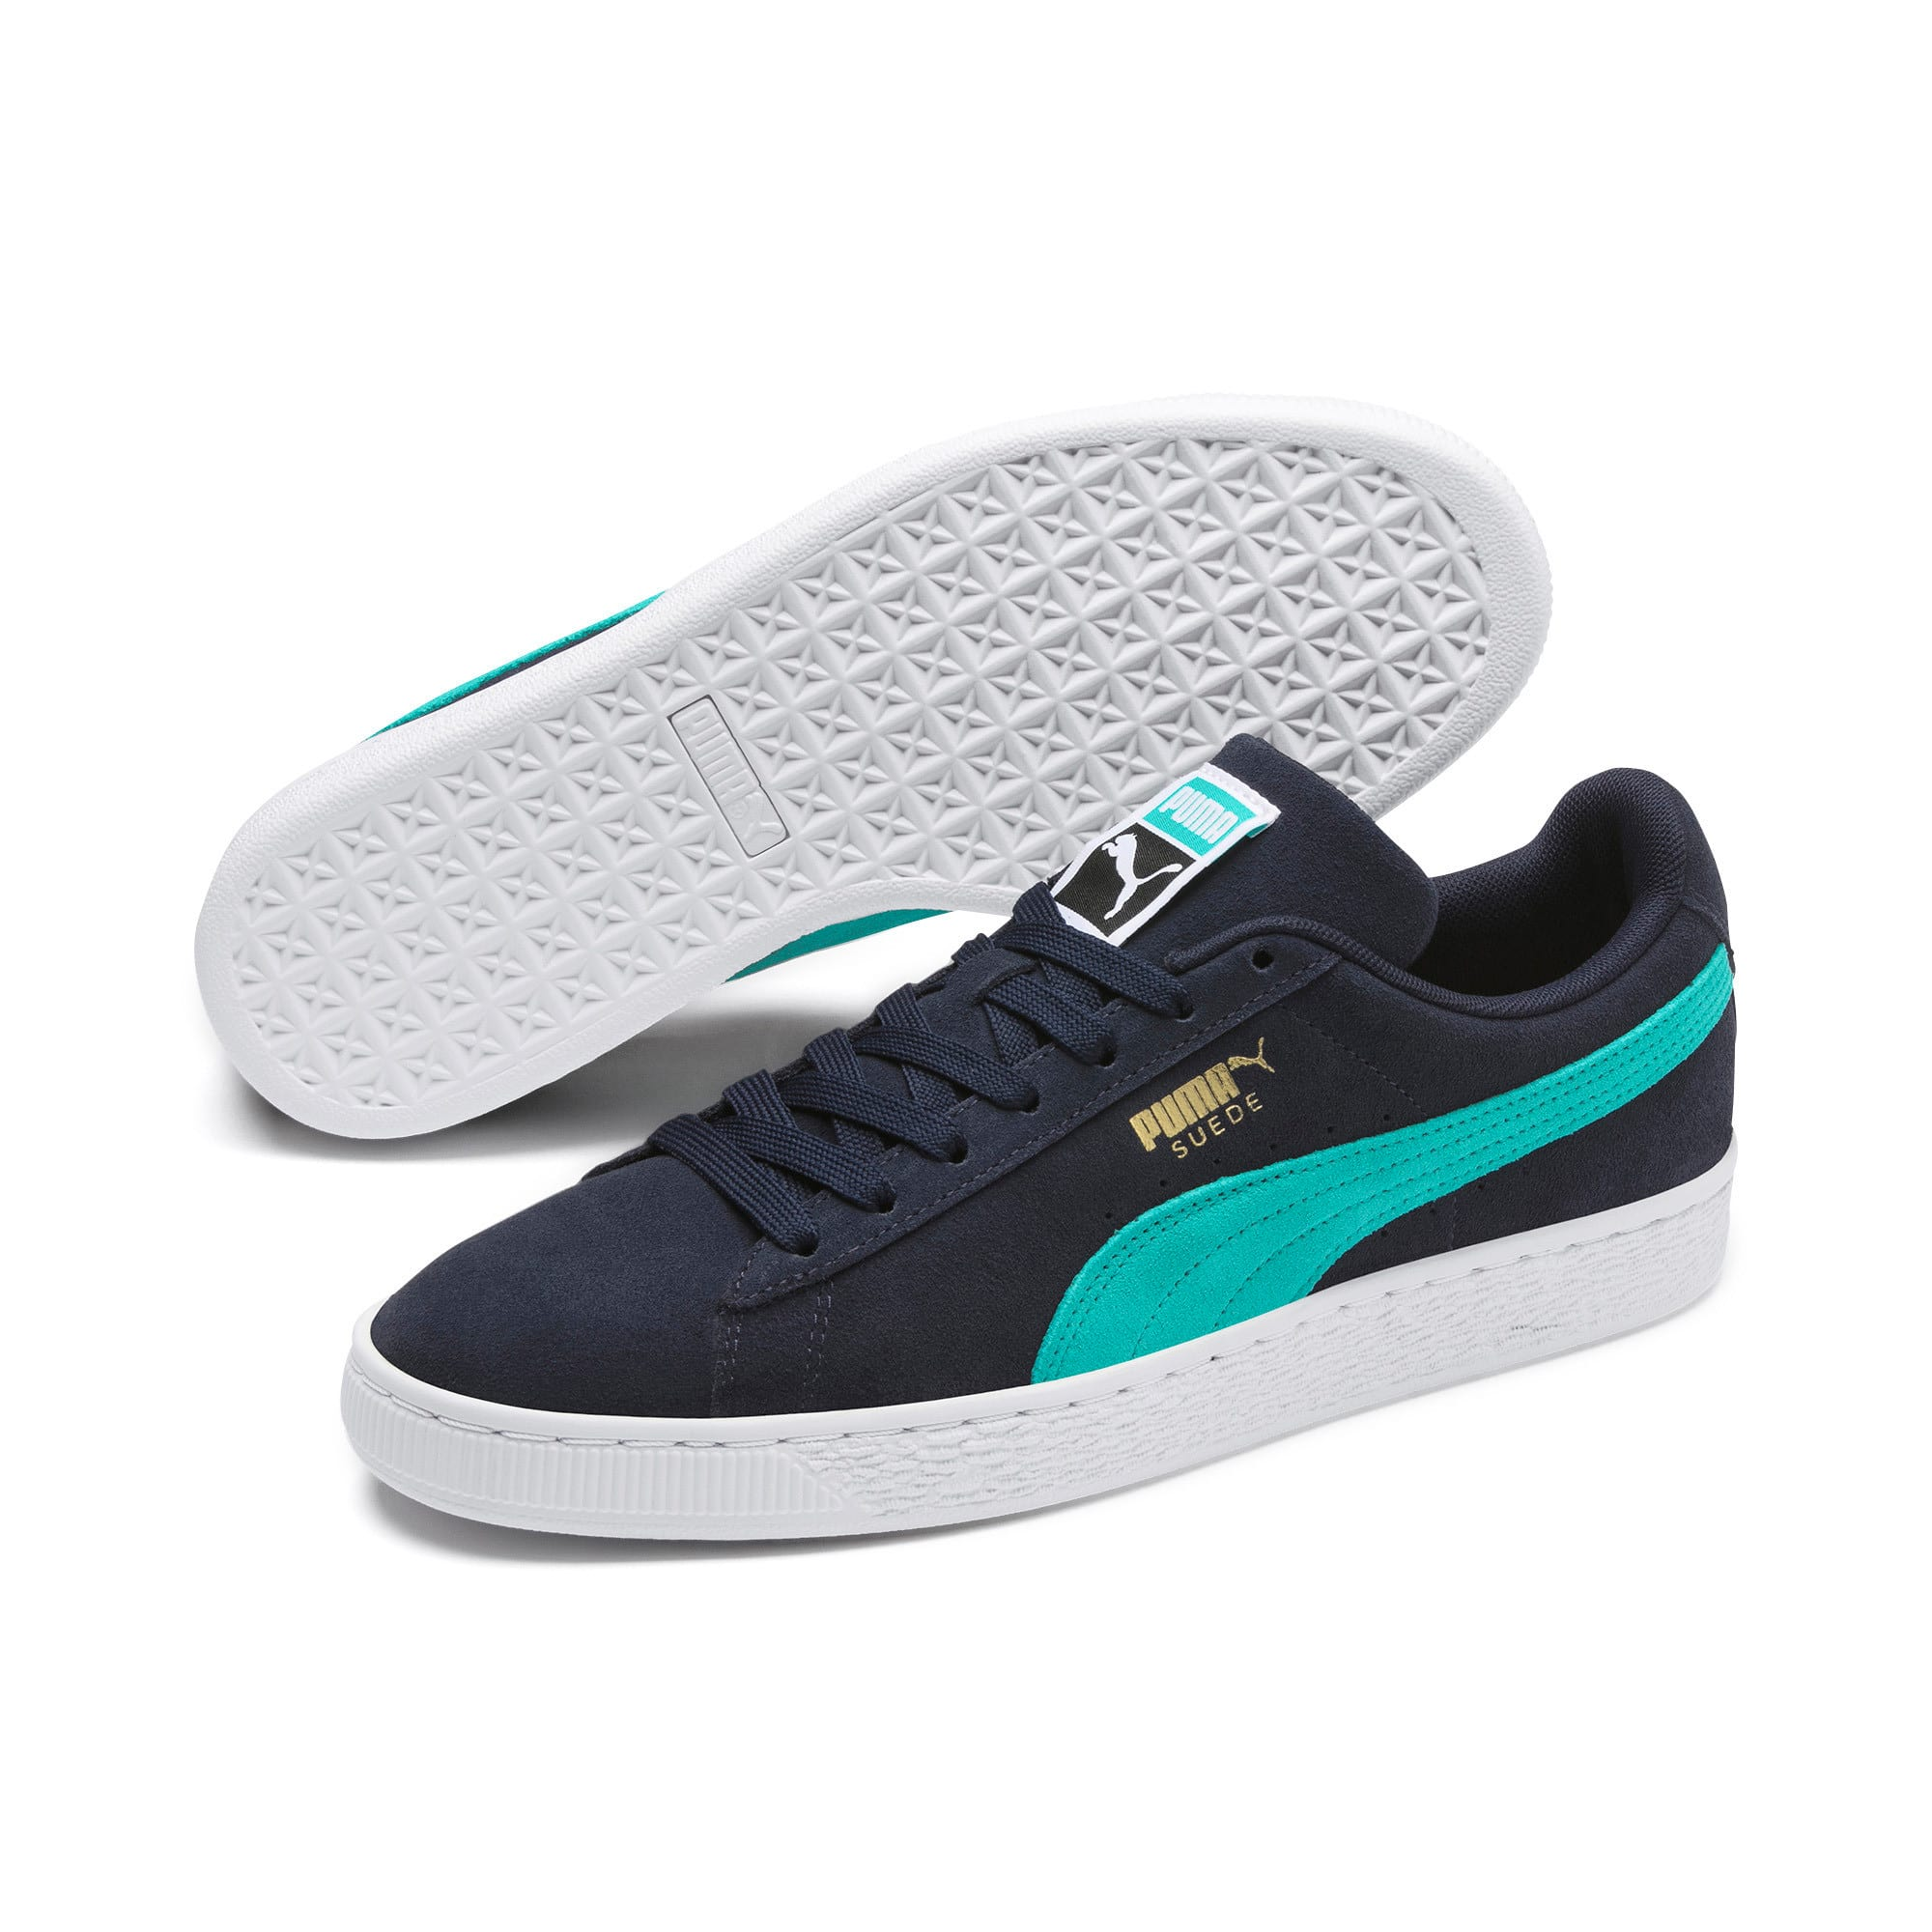 Thumbnail 3 of Suede Classic Trainers, Peacoat-Blue Turquoise-P Wht, medium